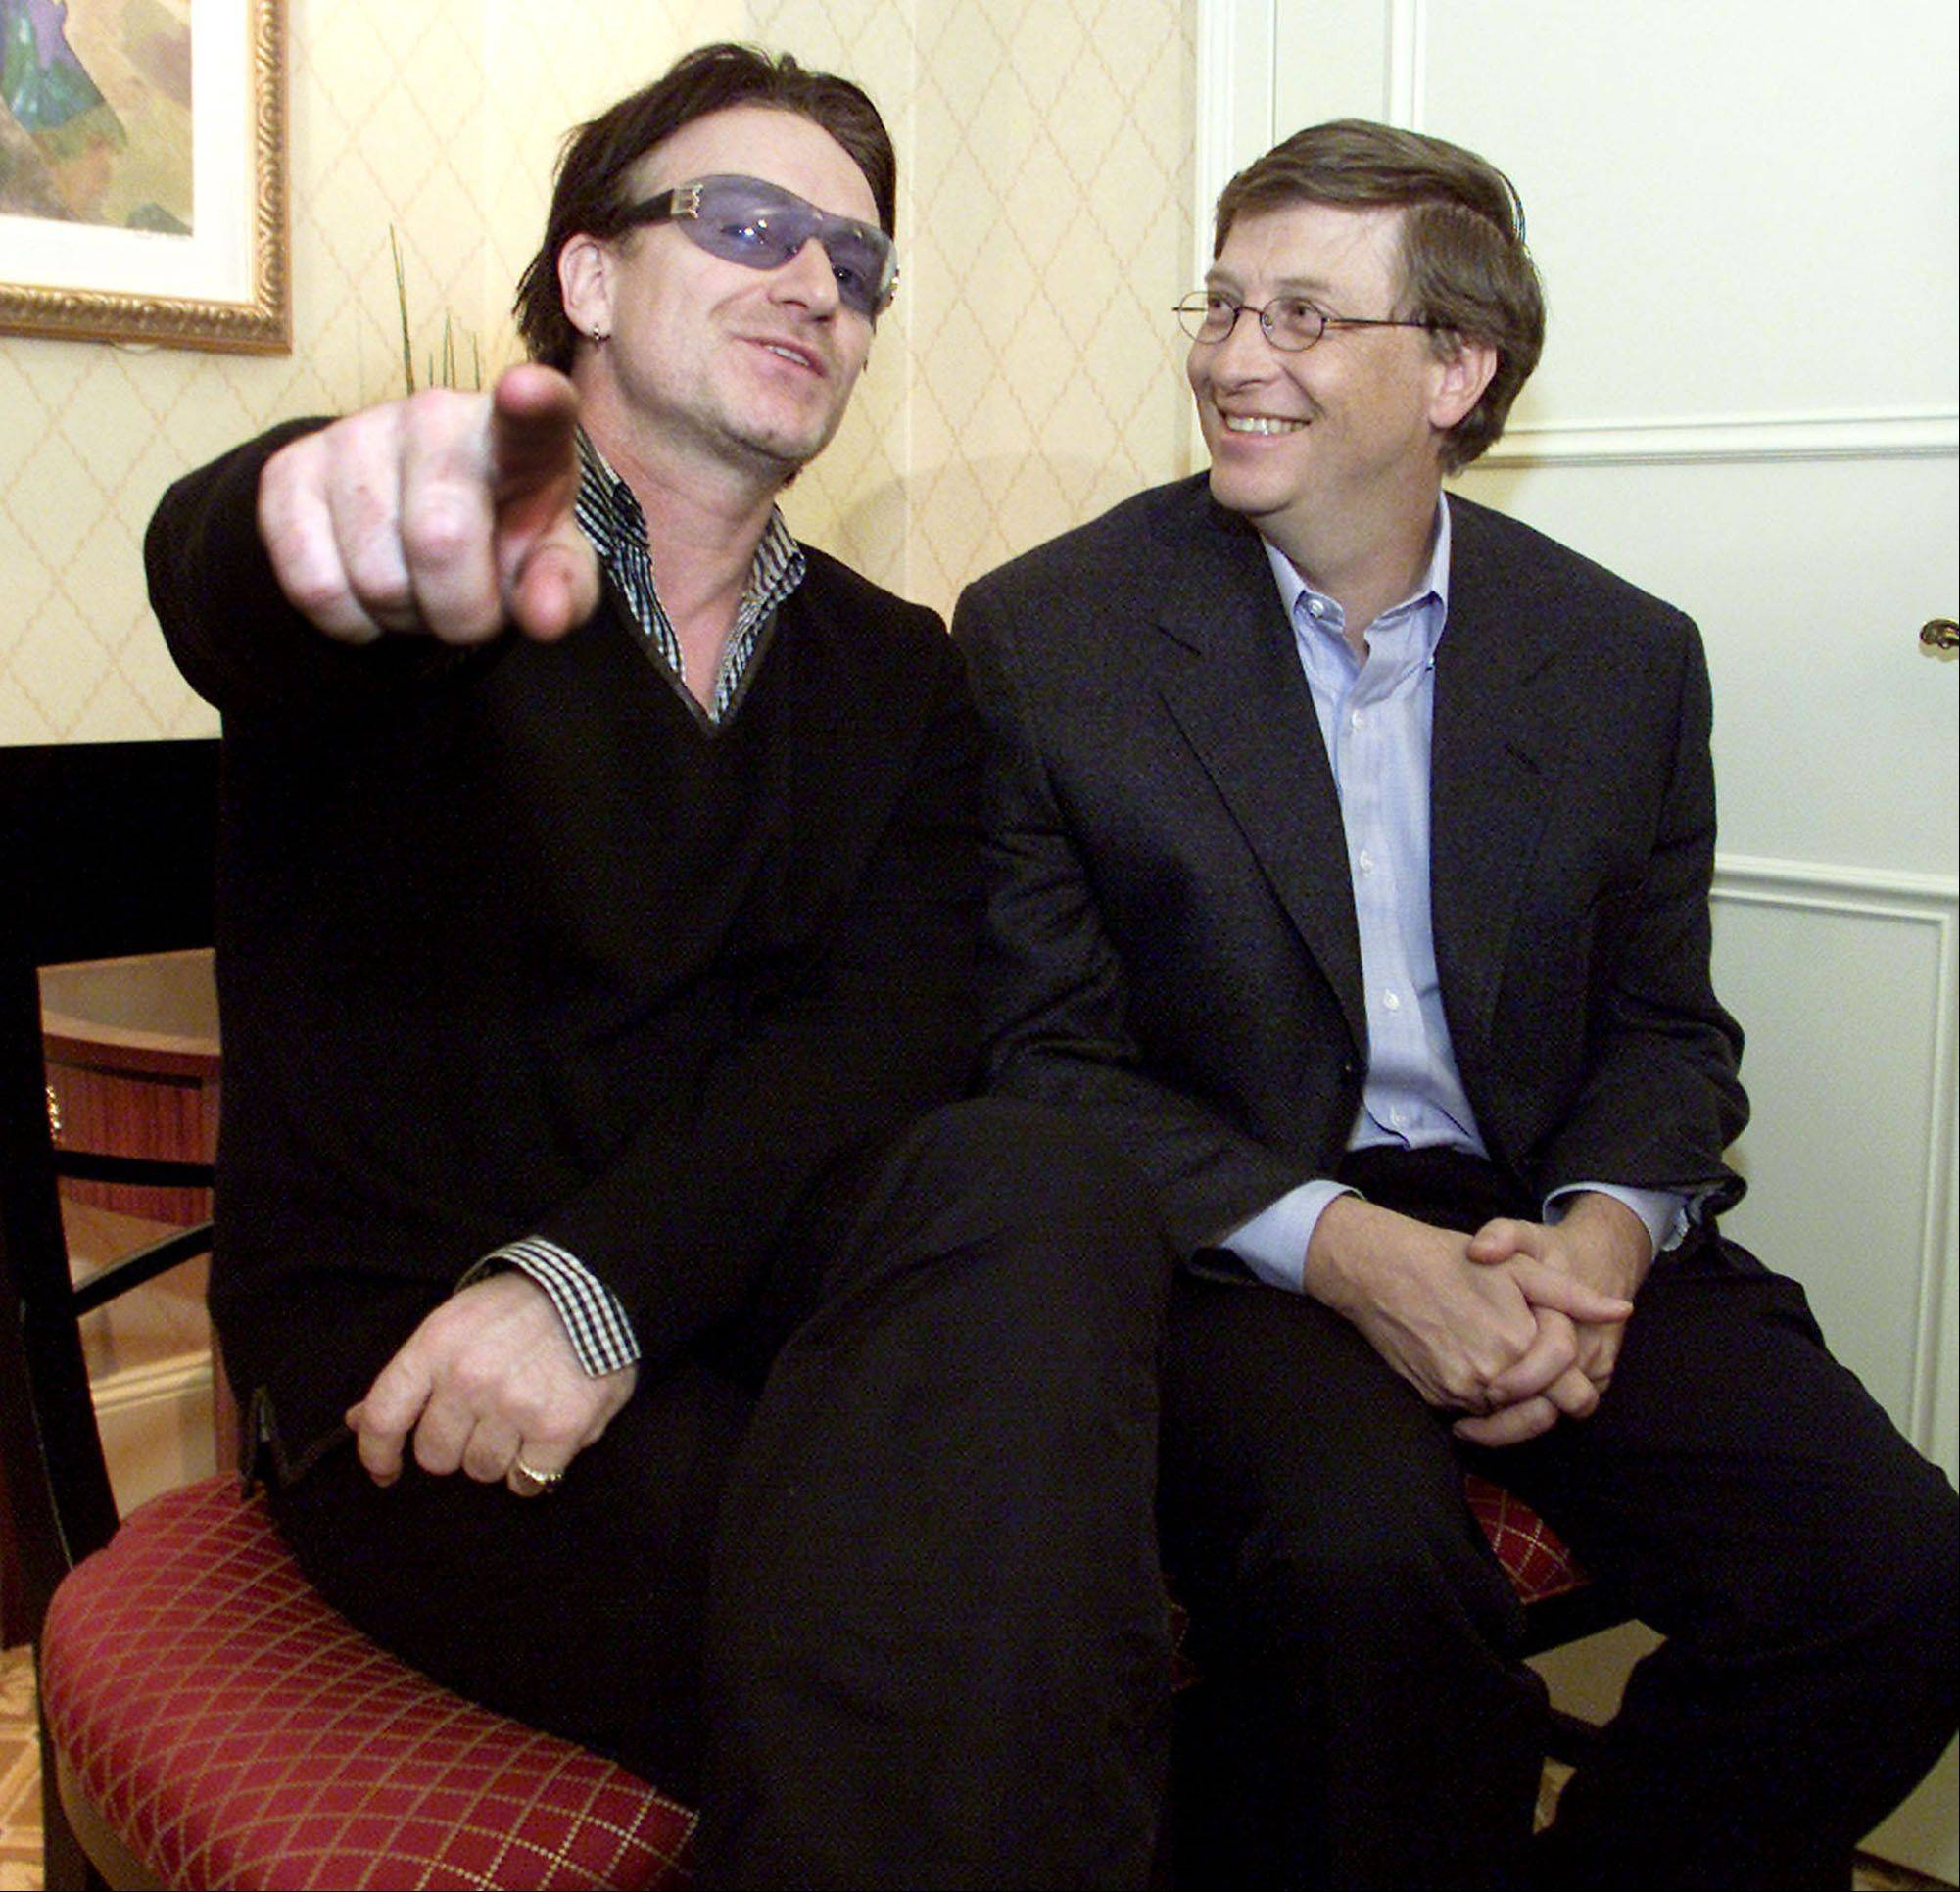 Bono, left, lead singer of the band U2, and Microsoft Corp. Chairman Bill Gates sit together before a news conference at the World Economic Forum in New York, Saturday, Feb. 2, 2002. Bono and Gates both addressed leaders at the World Economic Forum.